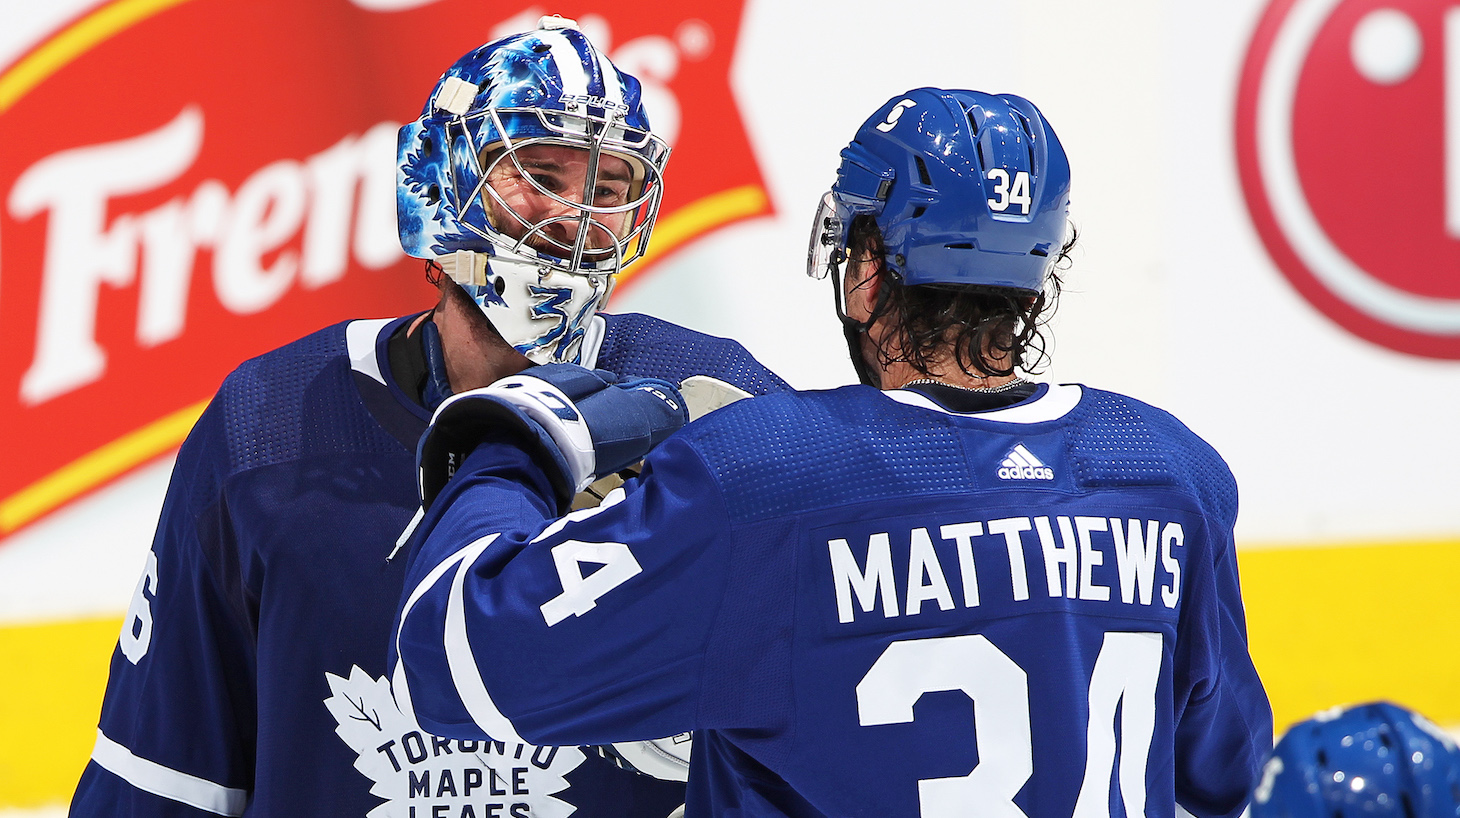 TORONTO, ON - APRIL 7: Jack Campbell #36 of the Toronto Maple Leafs is congratulated by teammate Auston Matthews #34 for breaking the consecutive win record for a Leaf against the Montreal Canadiens during an NHL game at Scotiabank Arena on April 7, 2021 in Toronto, Ontario, Canada. The Maple Leafs defeated the Canadiens 3-2. (Photo by Claus Andersen/Getty Images) *** Local Caption *** Jack Campbell; Auston Matthews